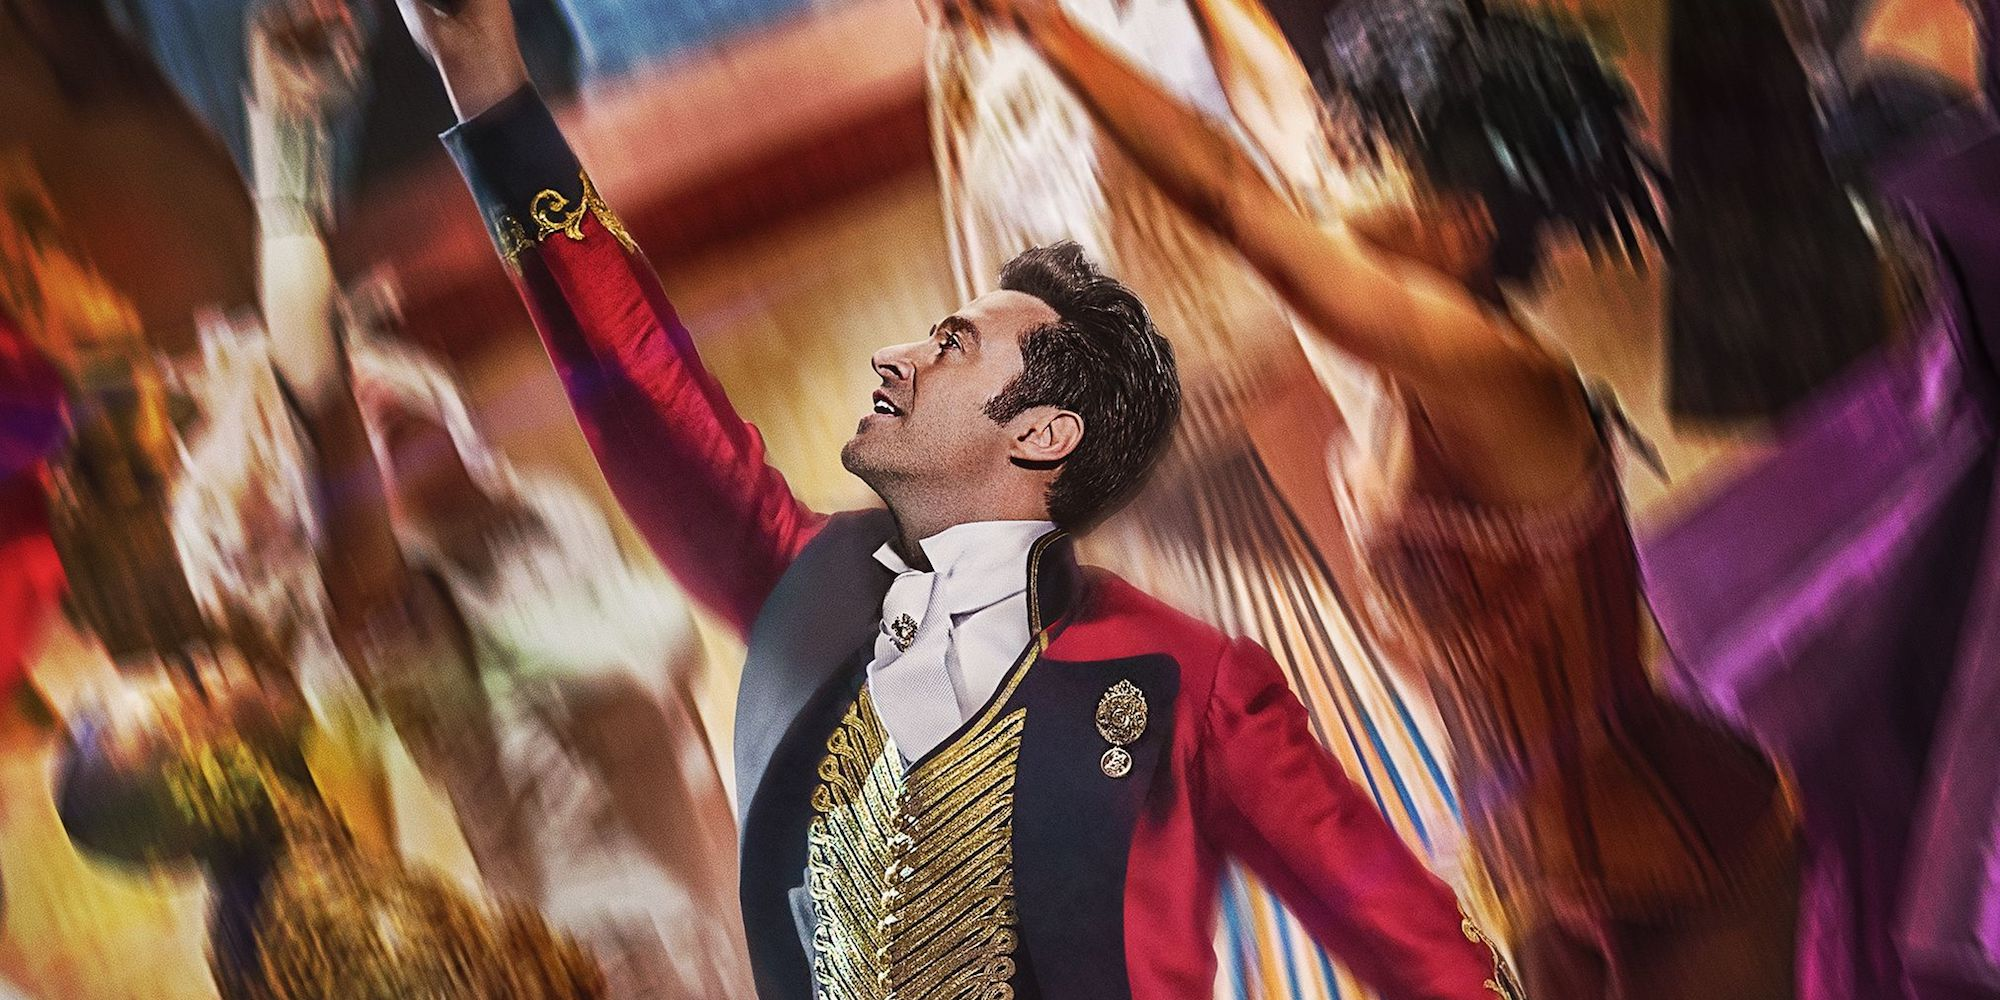 The Greatest Showman Cast Performs Live Movie Trailer